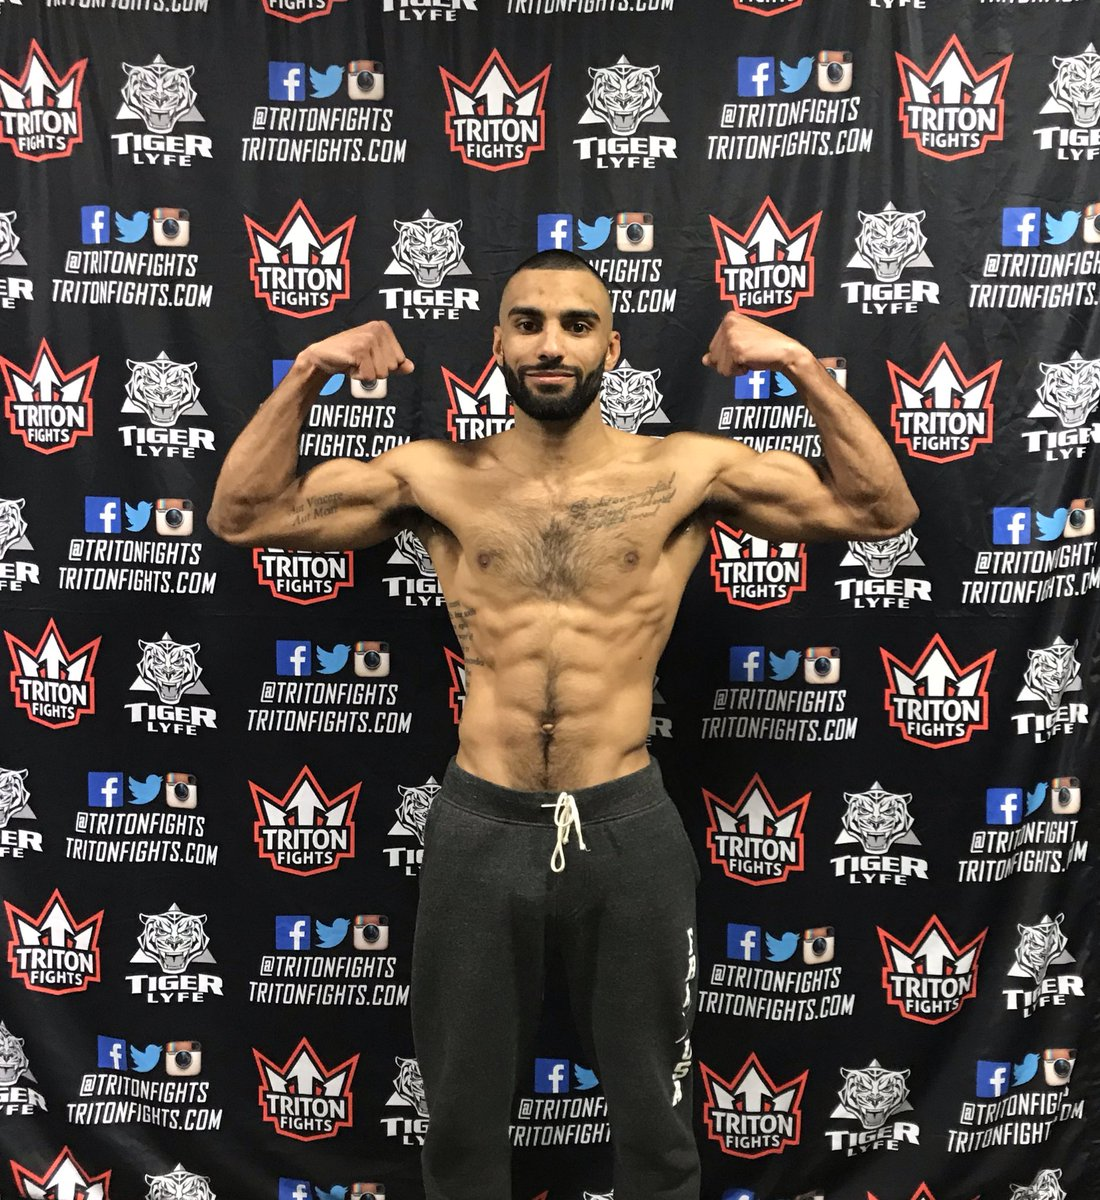 155.0 made weight💪🏽 Tomorrow I go to battle with the bros @realjamaicafunk & @robertrinck 🎫 - Still need tickets? https://tritonfights.ticketleap.com/triton-fights-12/dates/Apr-12-2019_at_0600PM… 📺- Fight Streaming live & free on @brlive   #LIMMA #TeamStock #HKickboxing @tritonfights